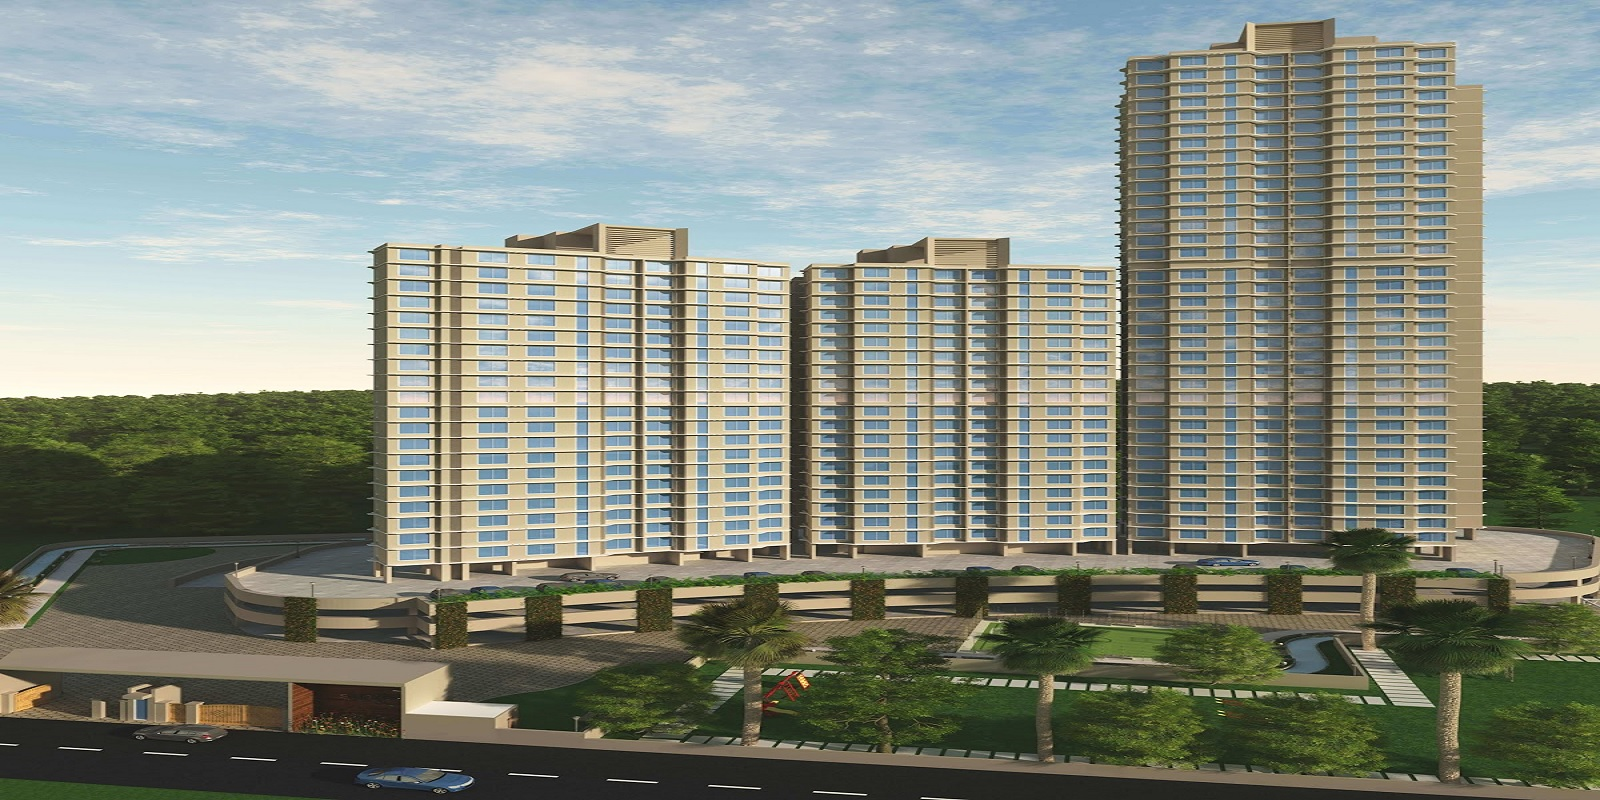 dhaval sunrise charkop wing b project project large image1